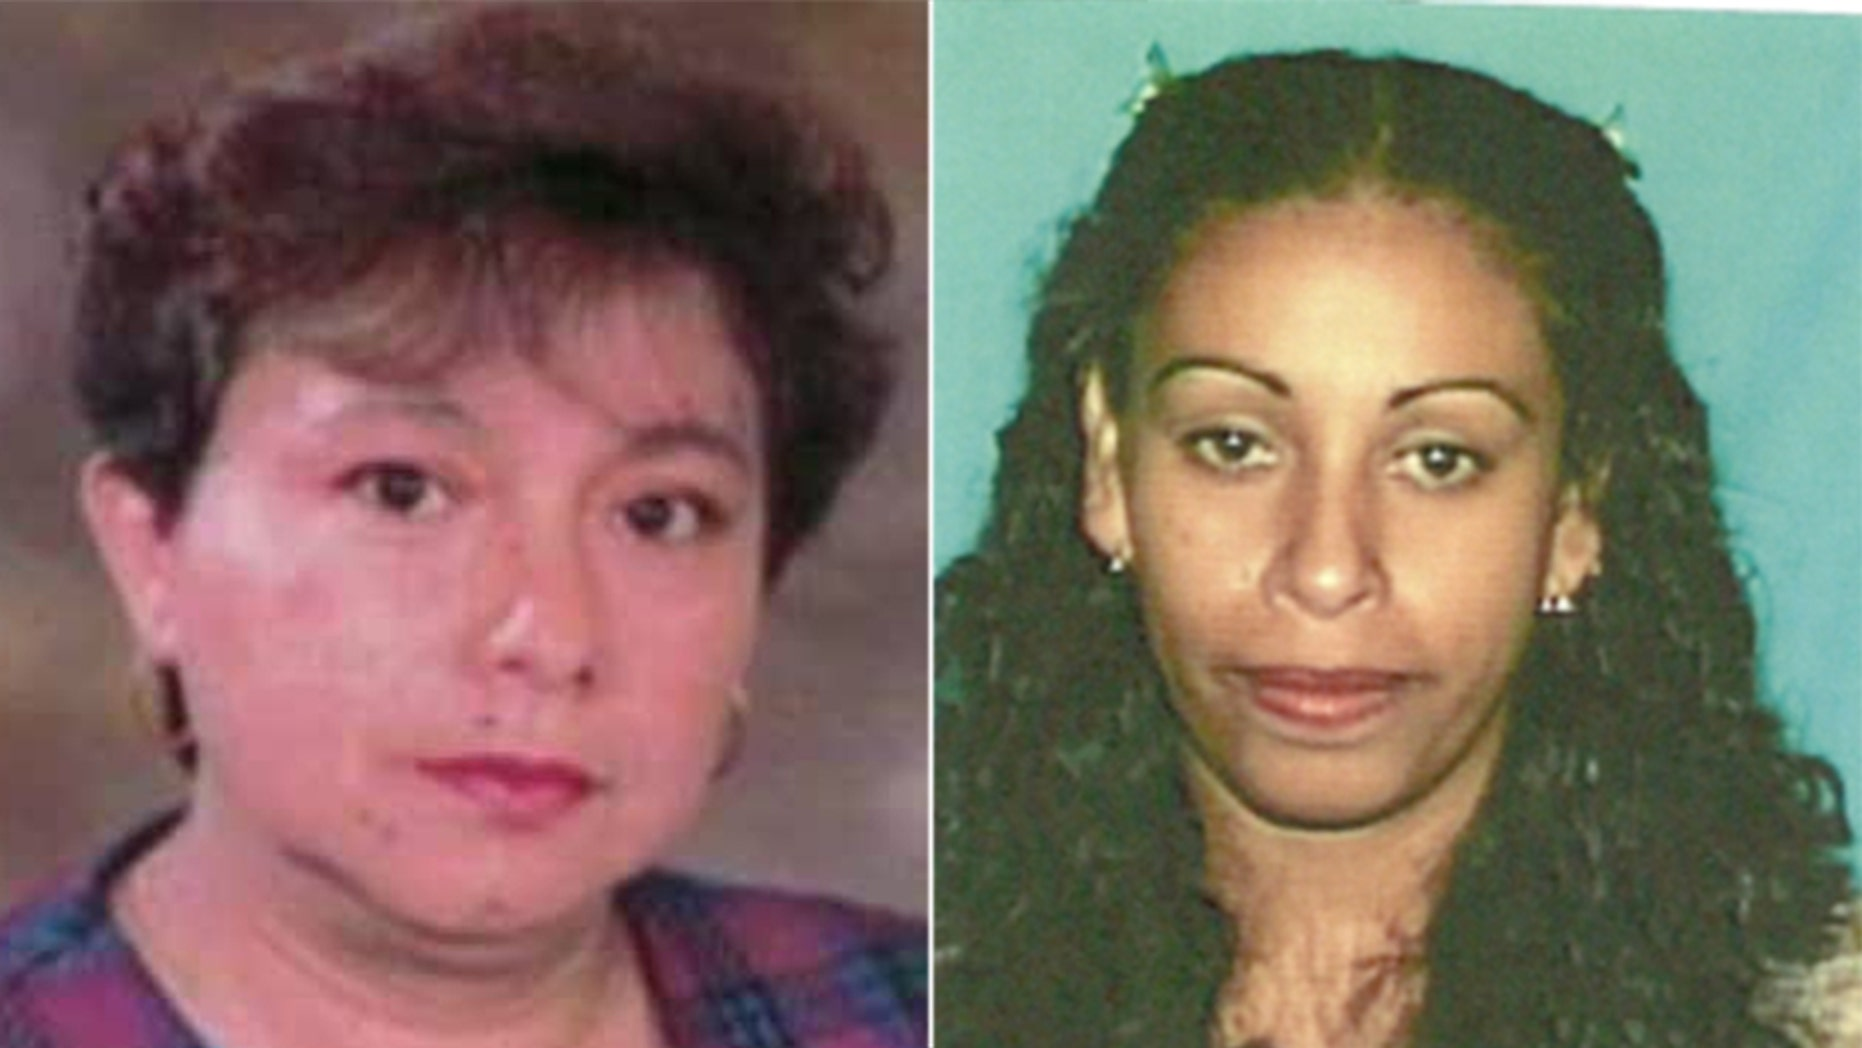 Damaian Castillo, 57, (l) and Sonia Mejia, 29, were killed on Feb. 9 two years apart.